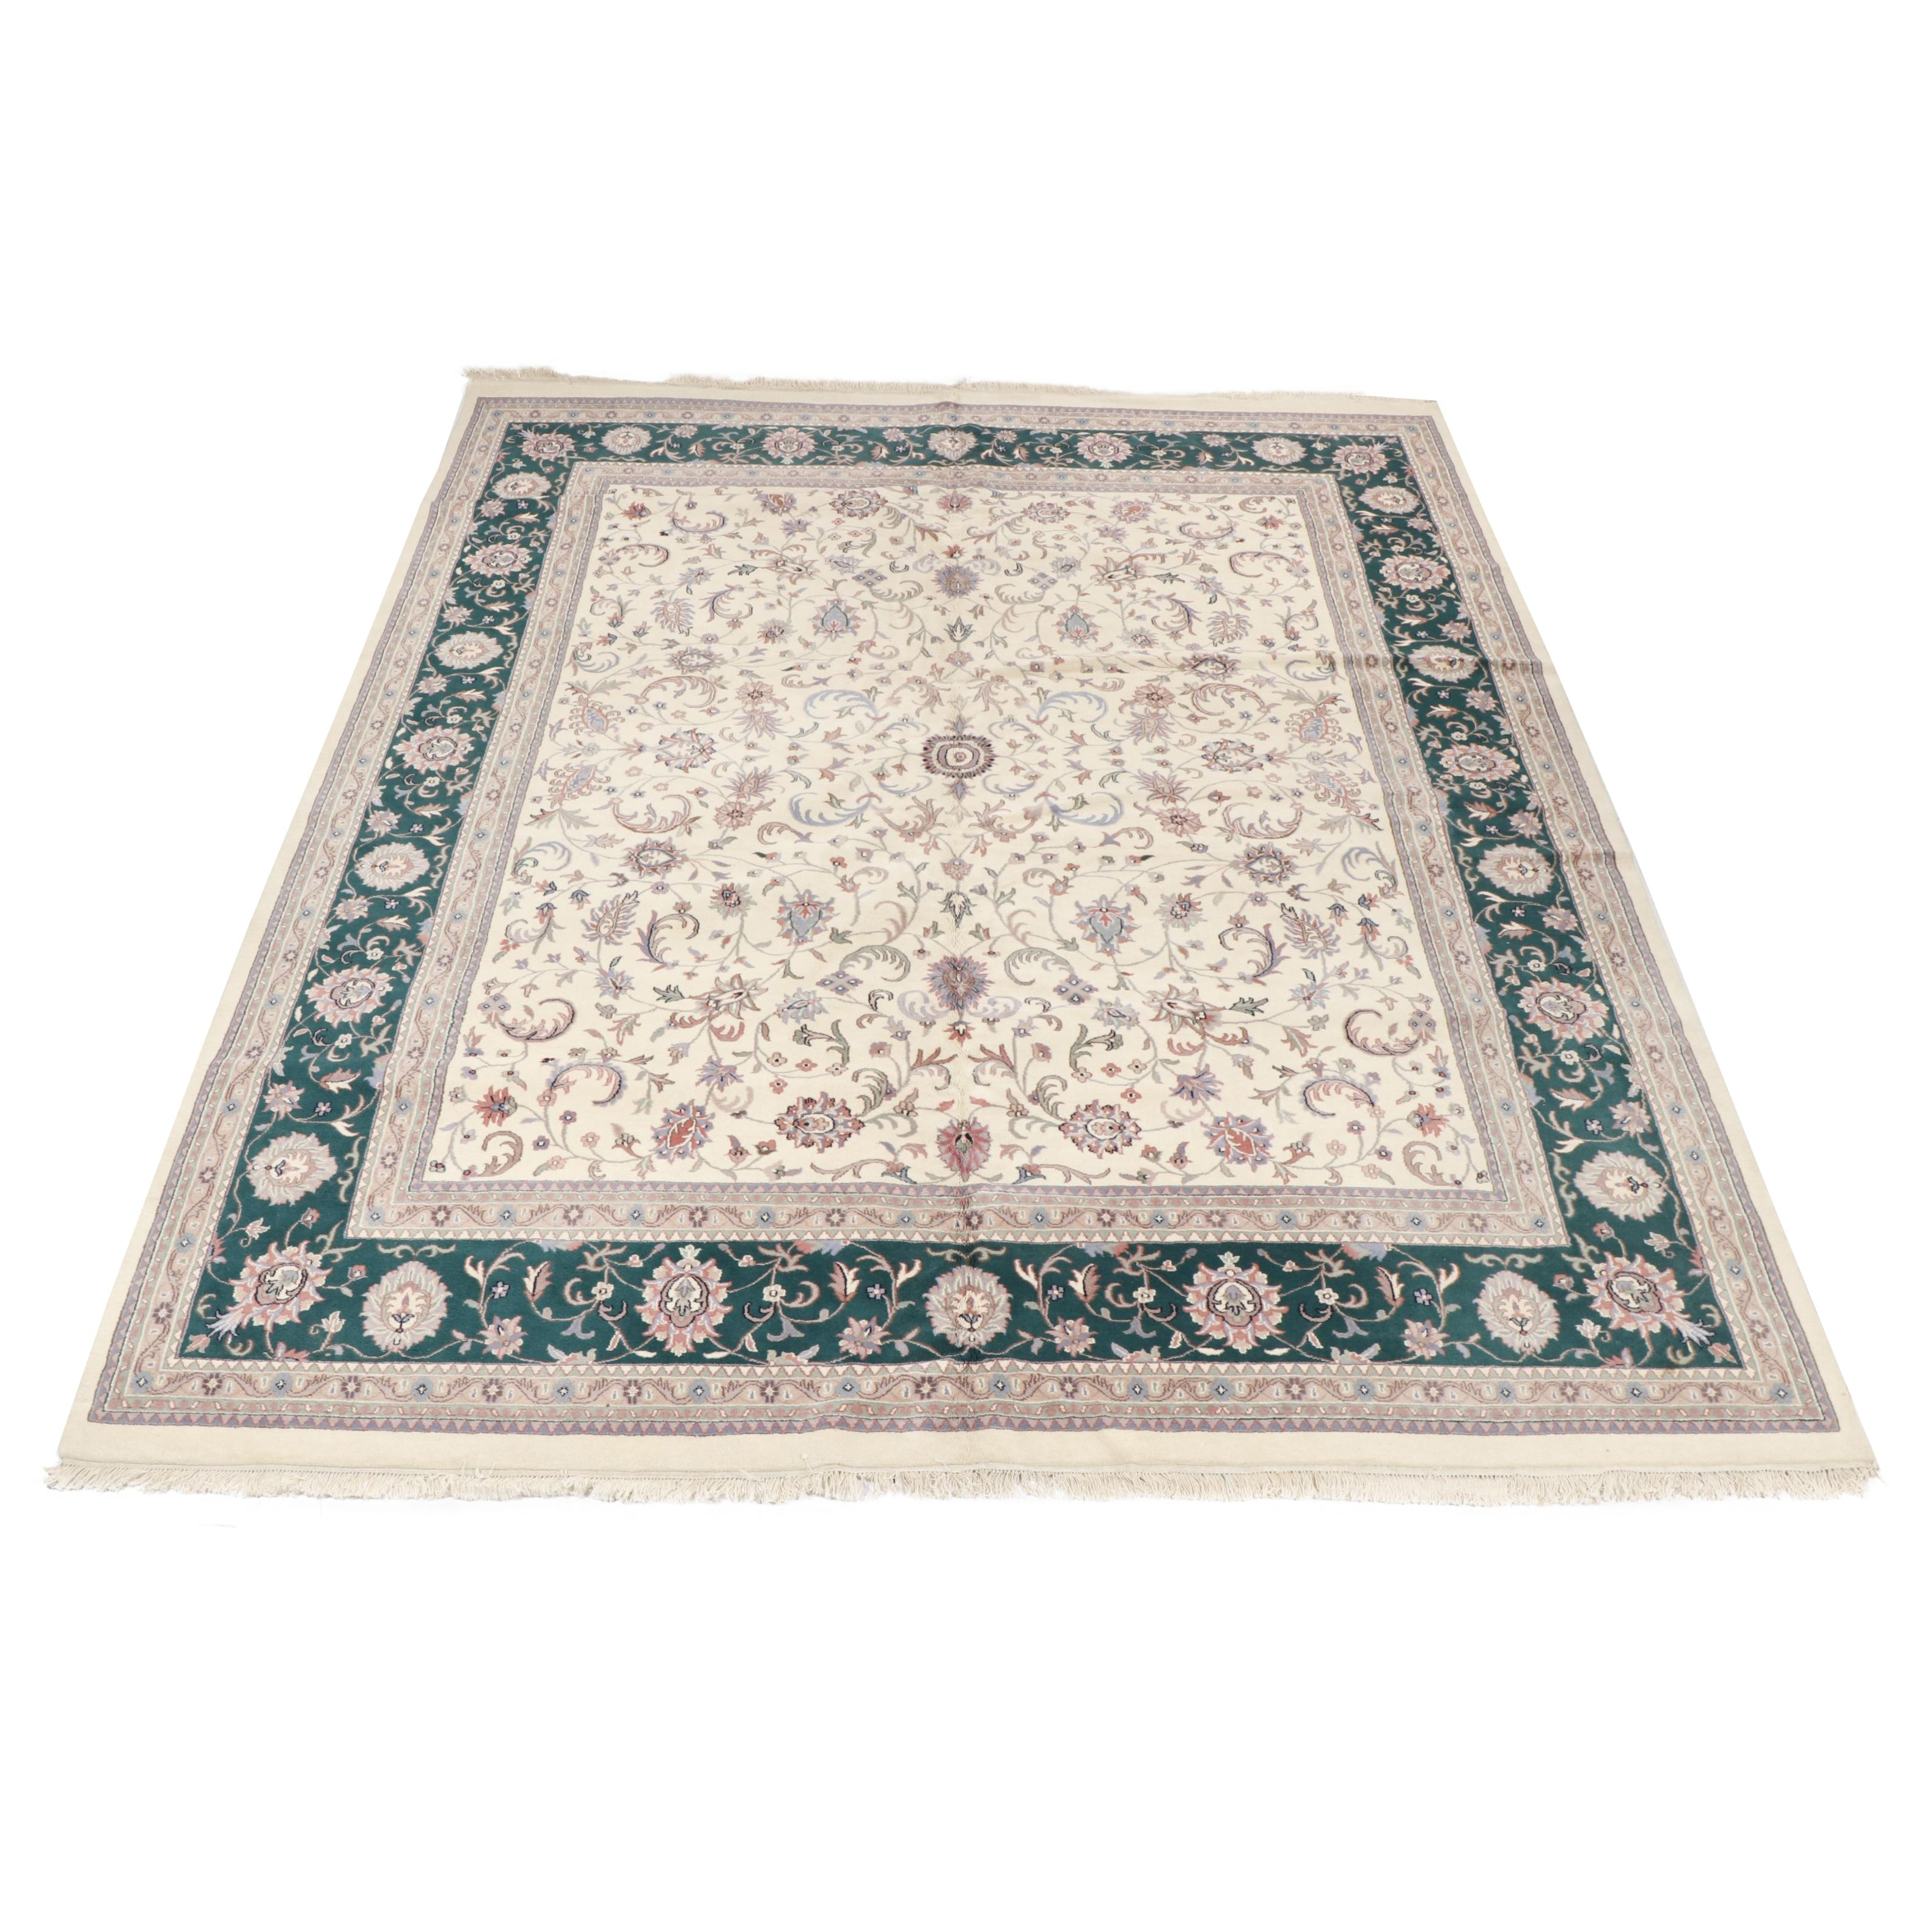 Hand-Knotted Indian Wool Palace Sized Rug from Oscar Isberian